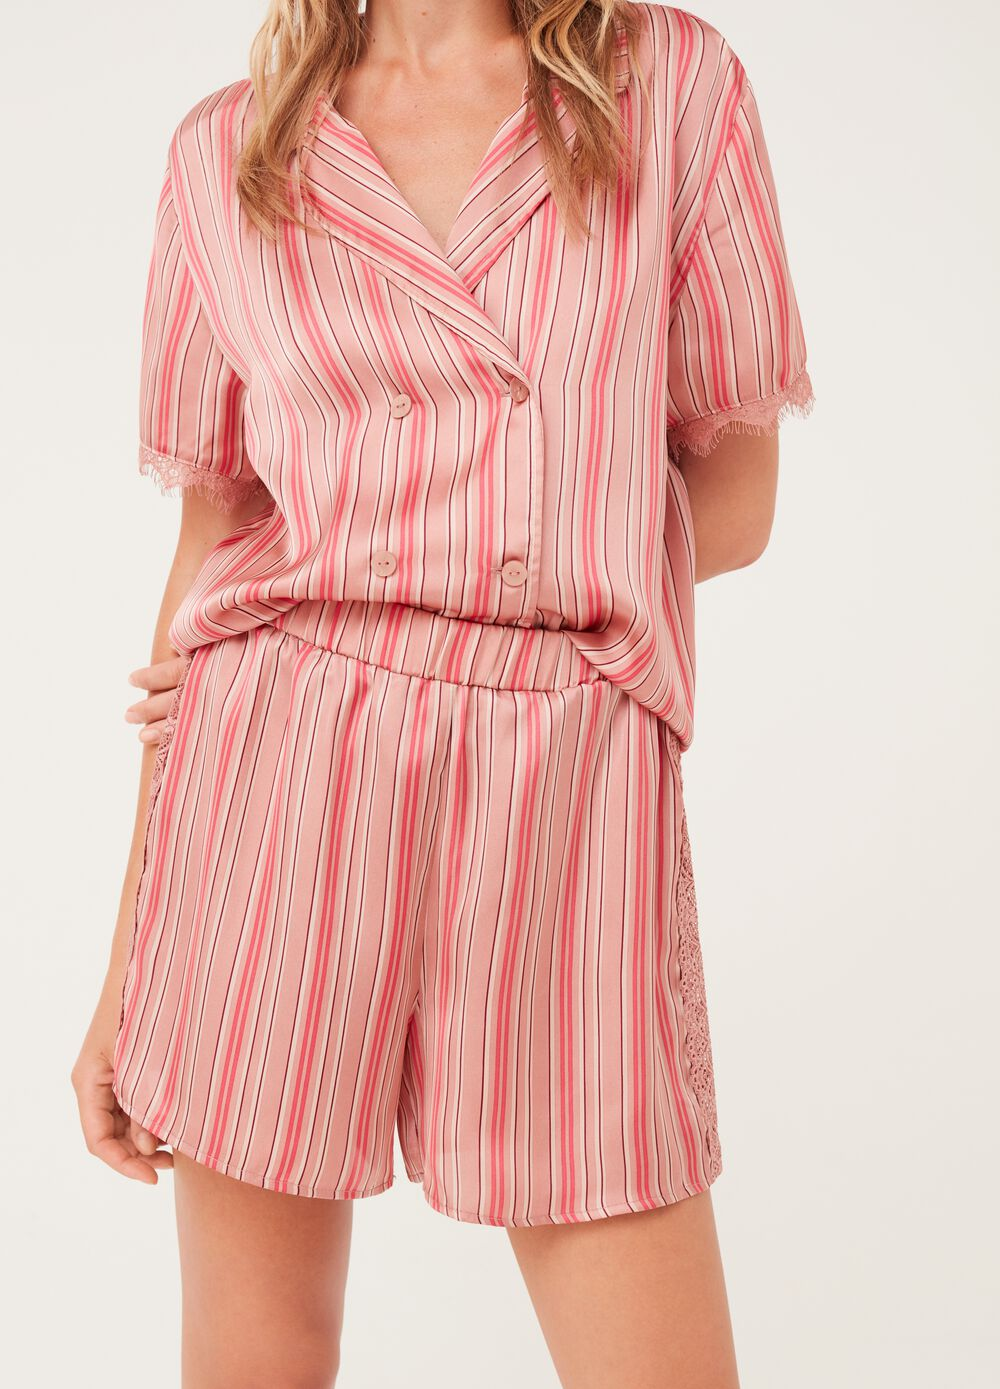 Pyjama shorts with lace and striped pattern